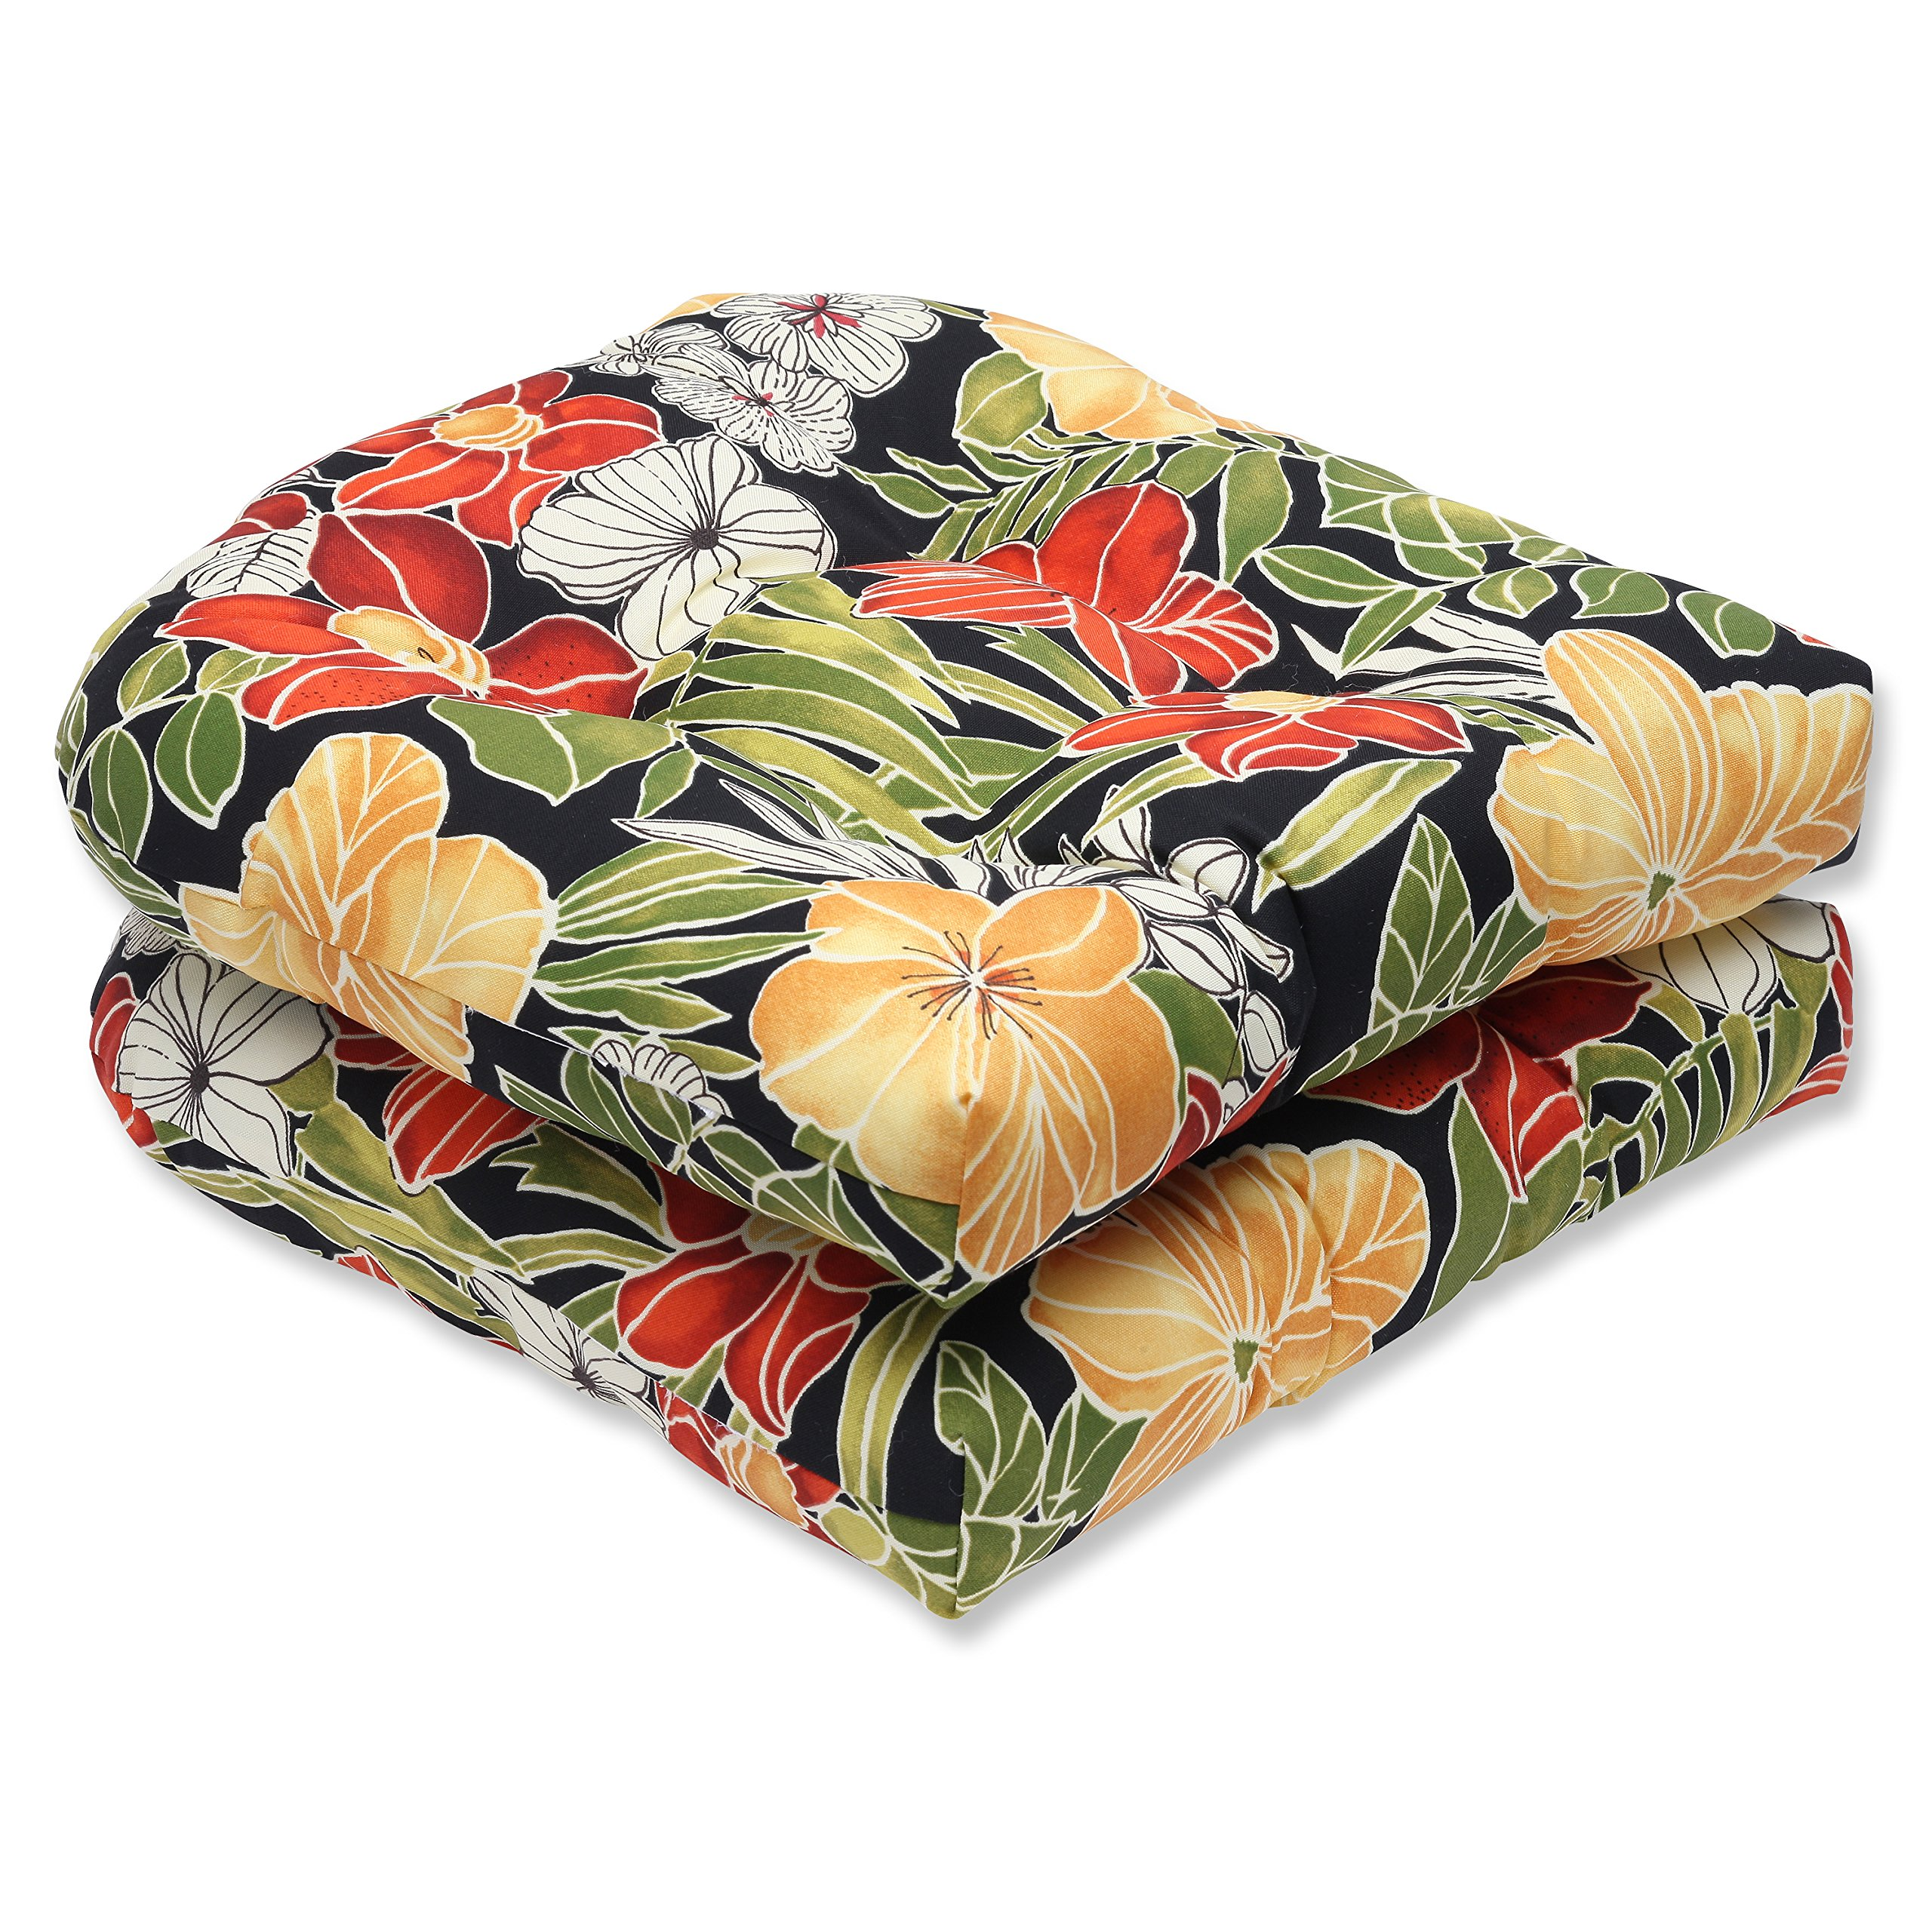 Pillow Perfect Outdoor Clemens Wicker Seat Cushion, Noir, Set of 2 by Pillow Perfect